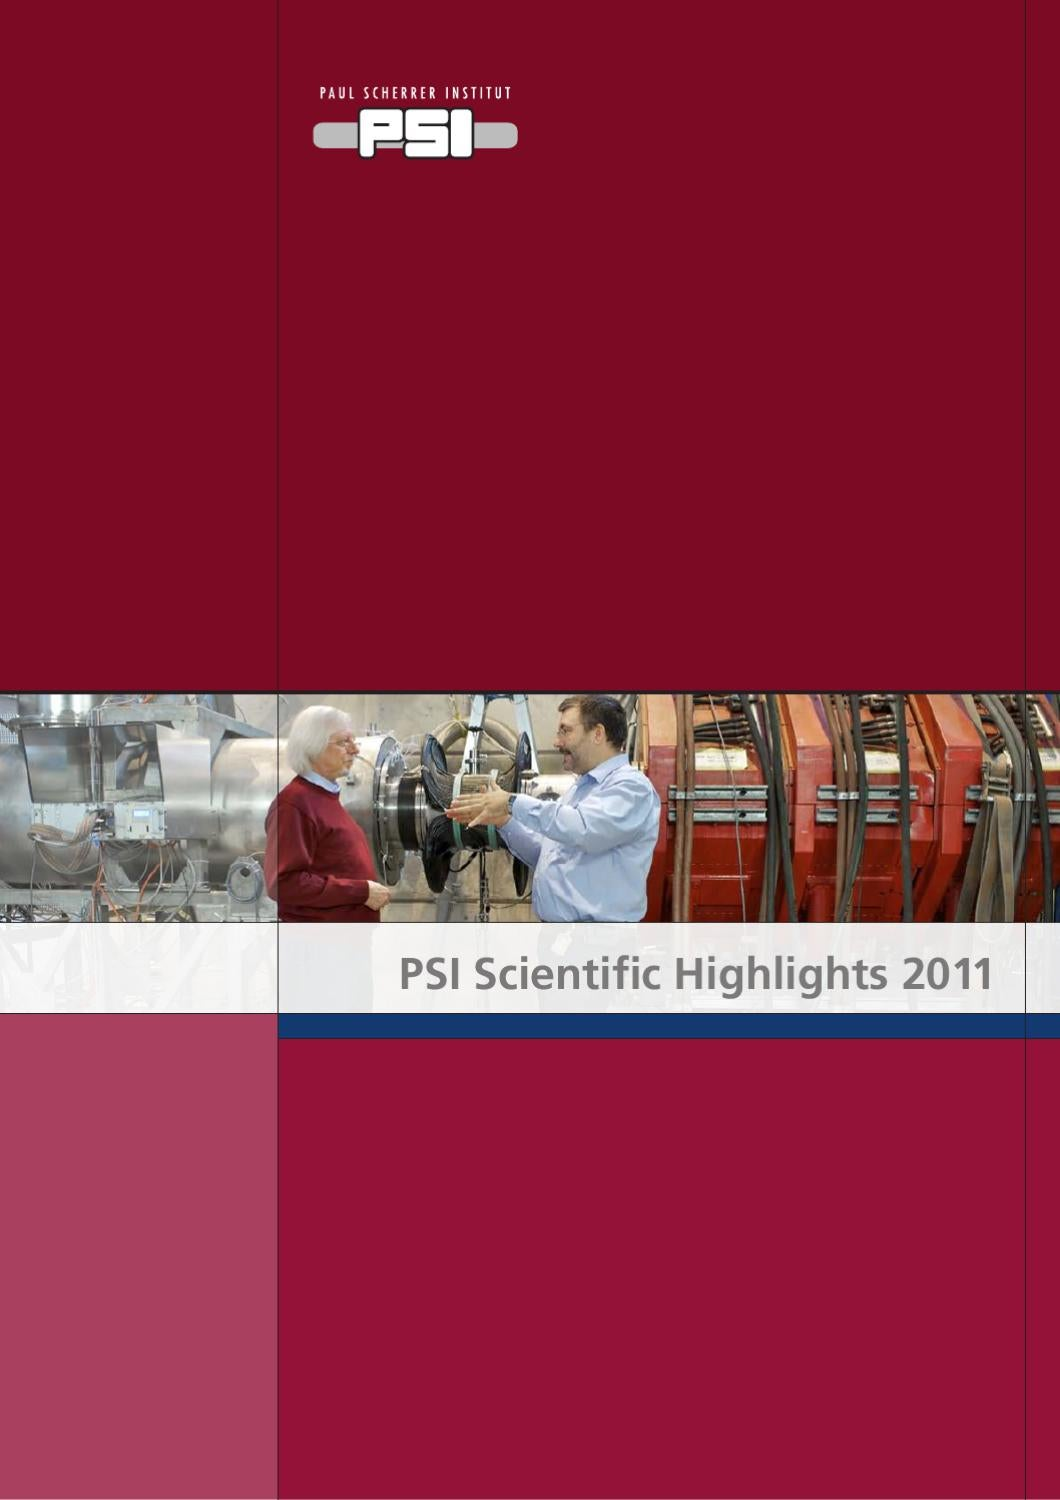 Scientific highlights 2011 by paul scherrer institut issuu fandeluxe Image collections